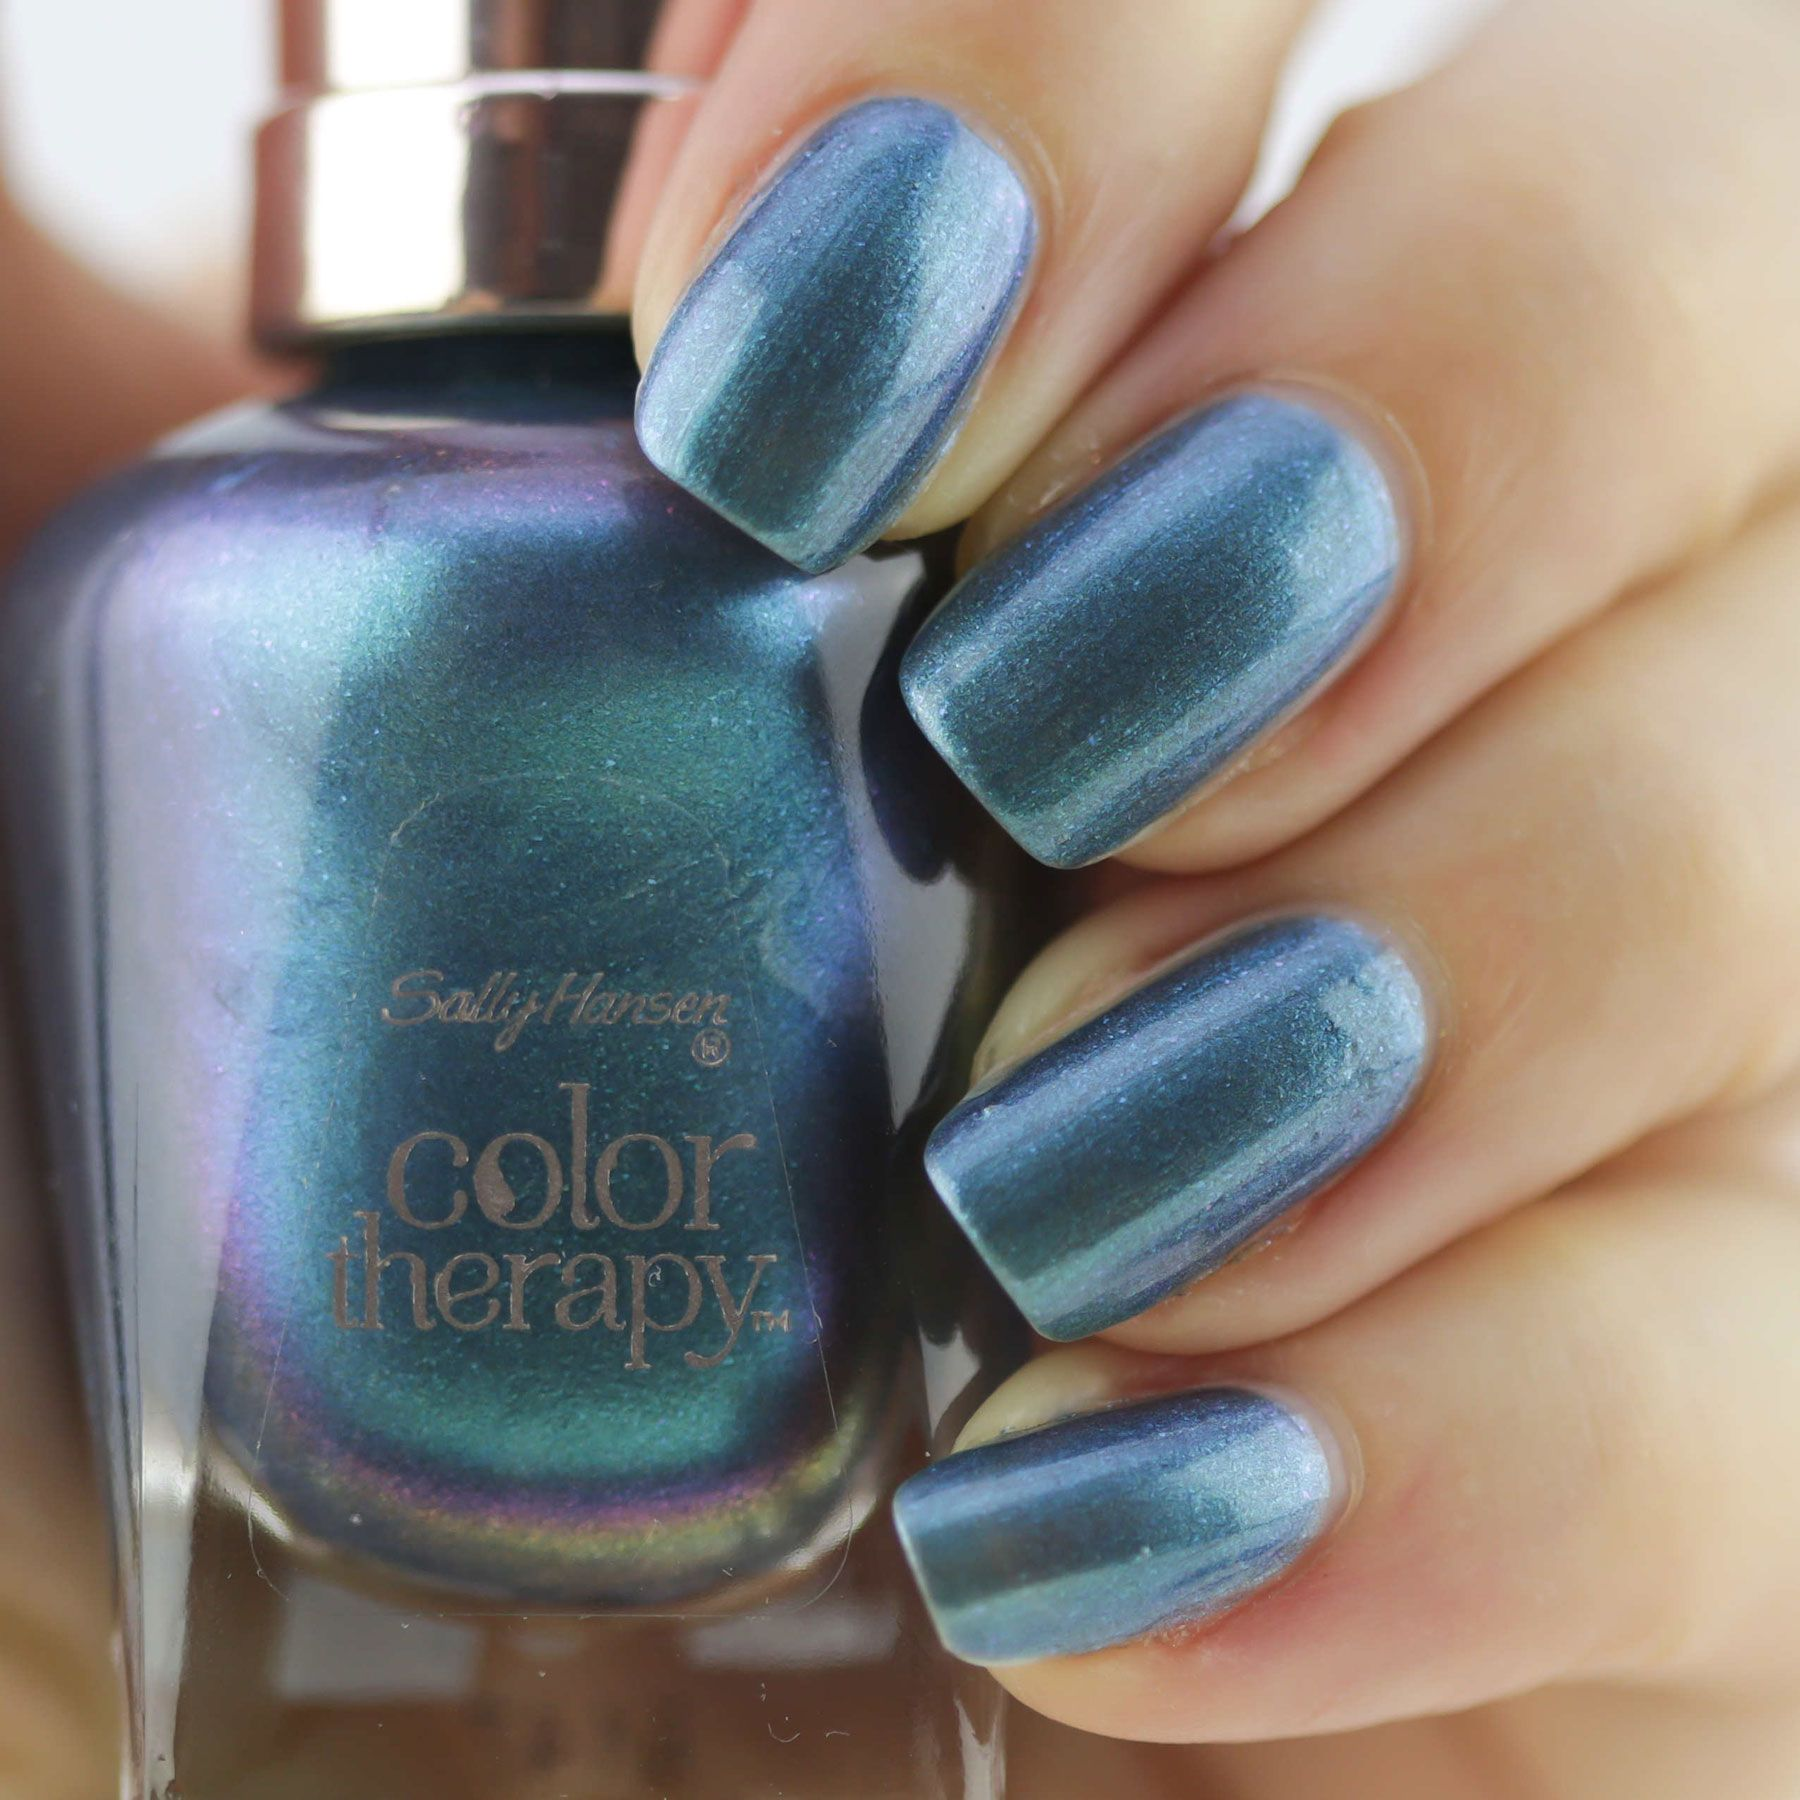 Colour therapy for sciatica - Colour Therapy For Sleep Give Your Nails Spa Luxury With New Sally Hansen Color Therapy